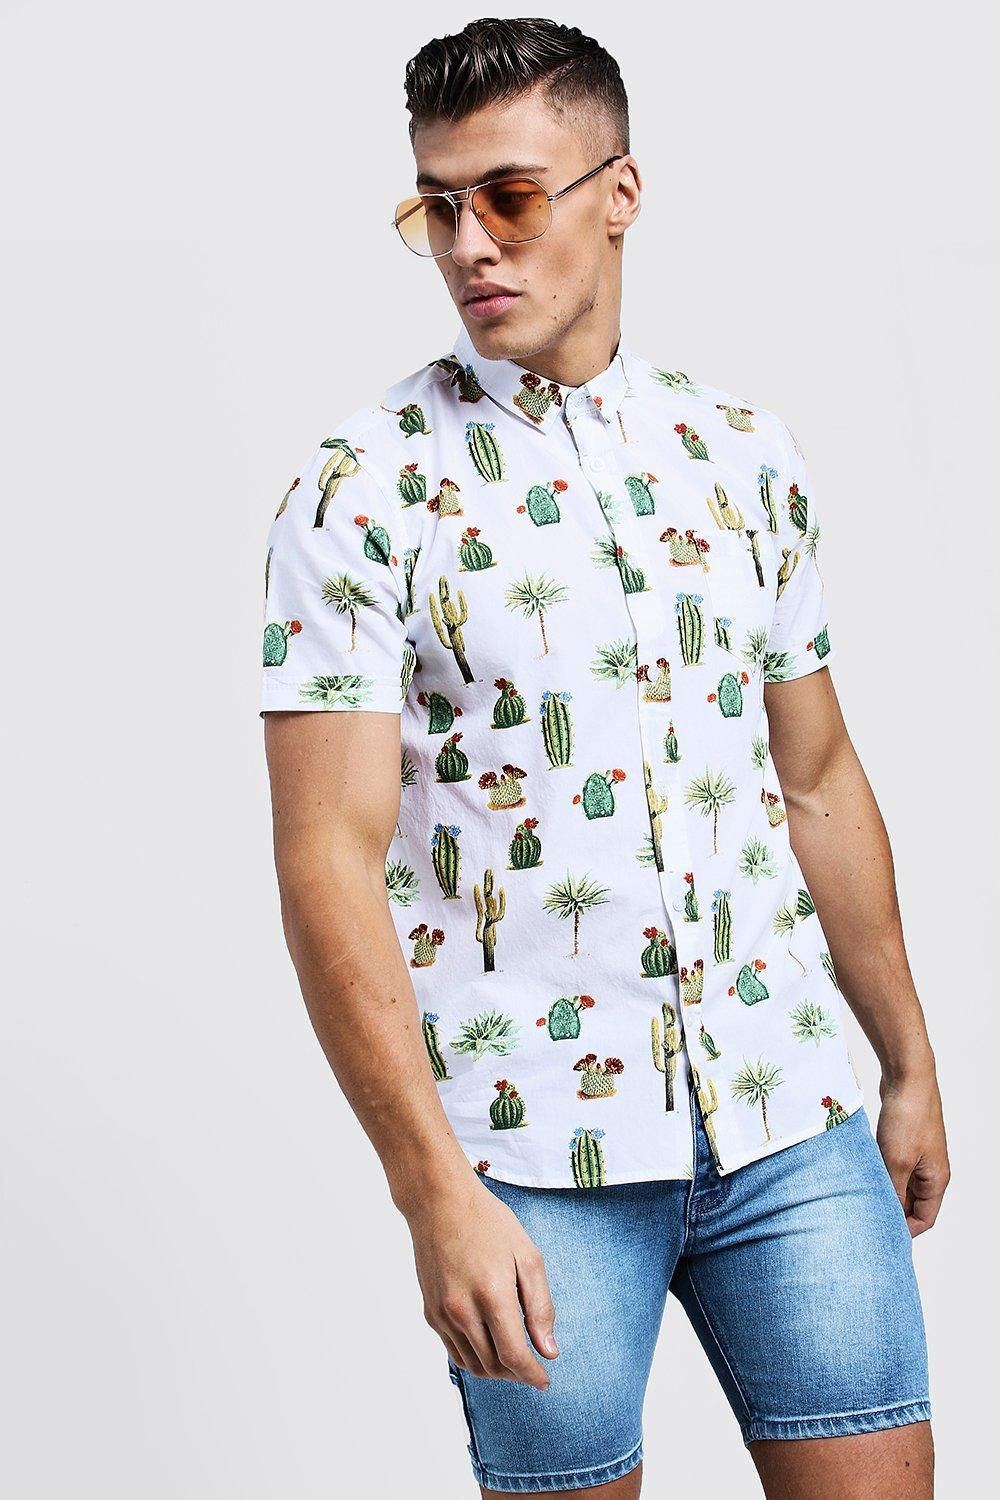 63983405 BoohooMAN Cactus Print Short Sleeve Cotton Shirt in White for Men - Lyst